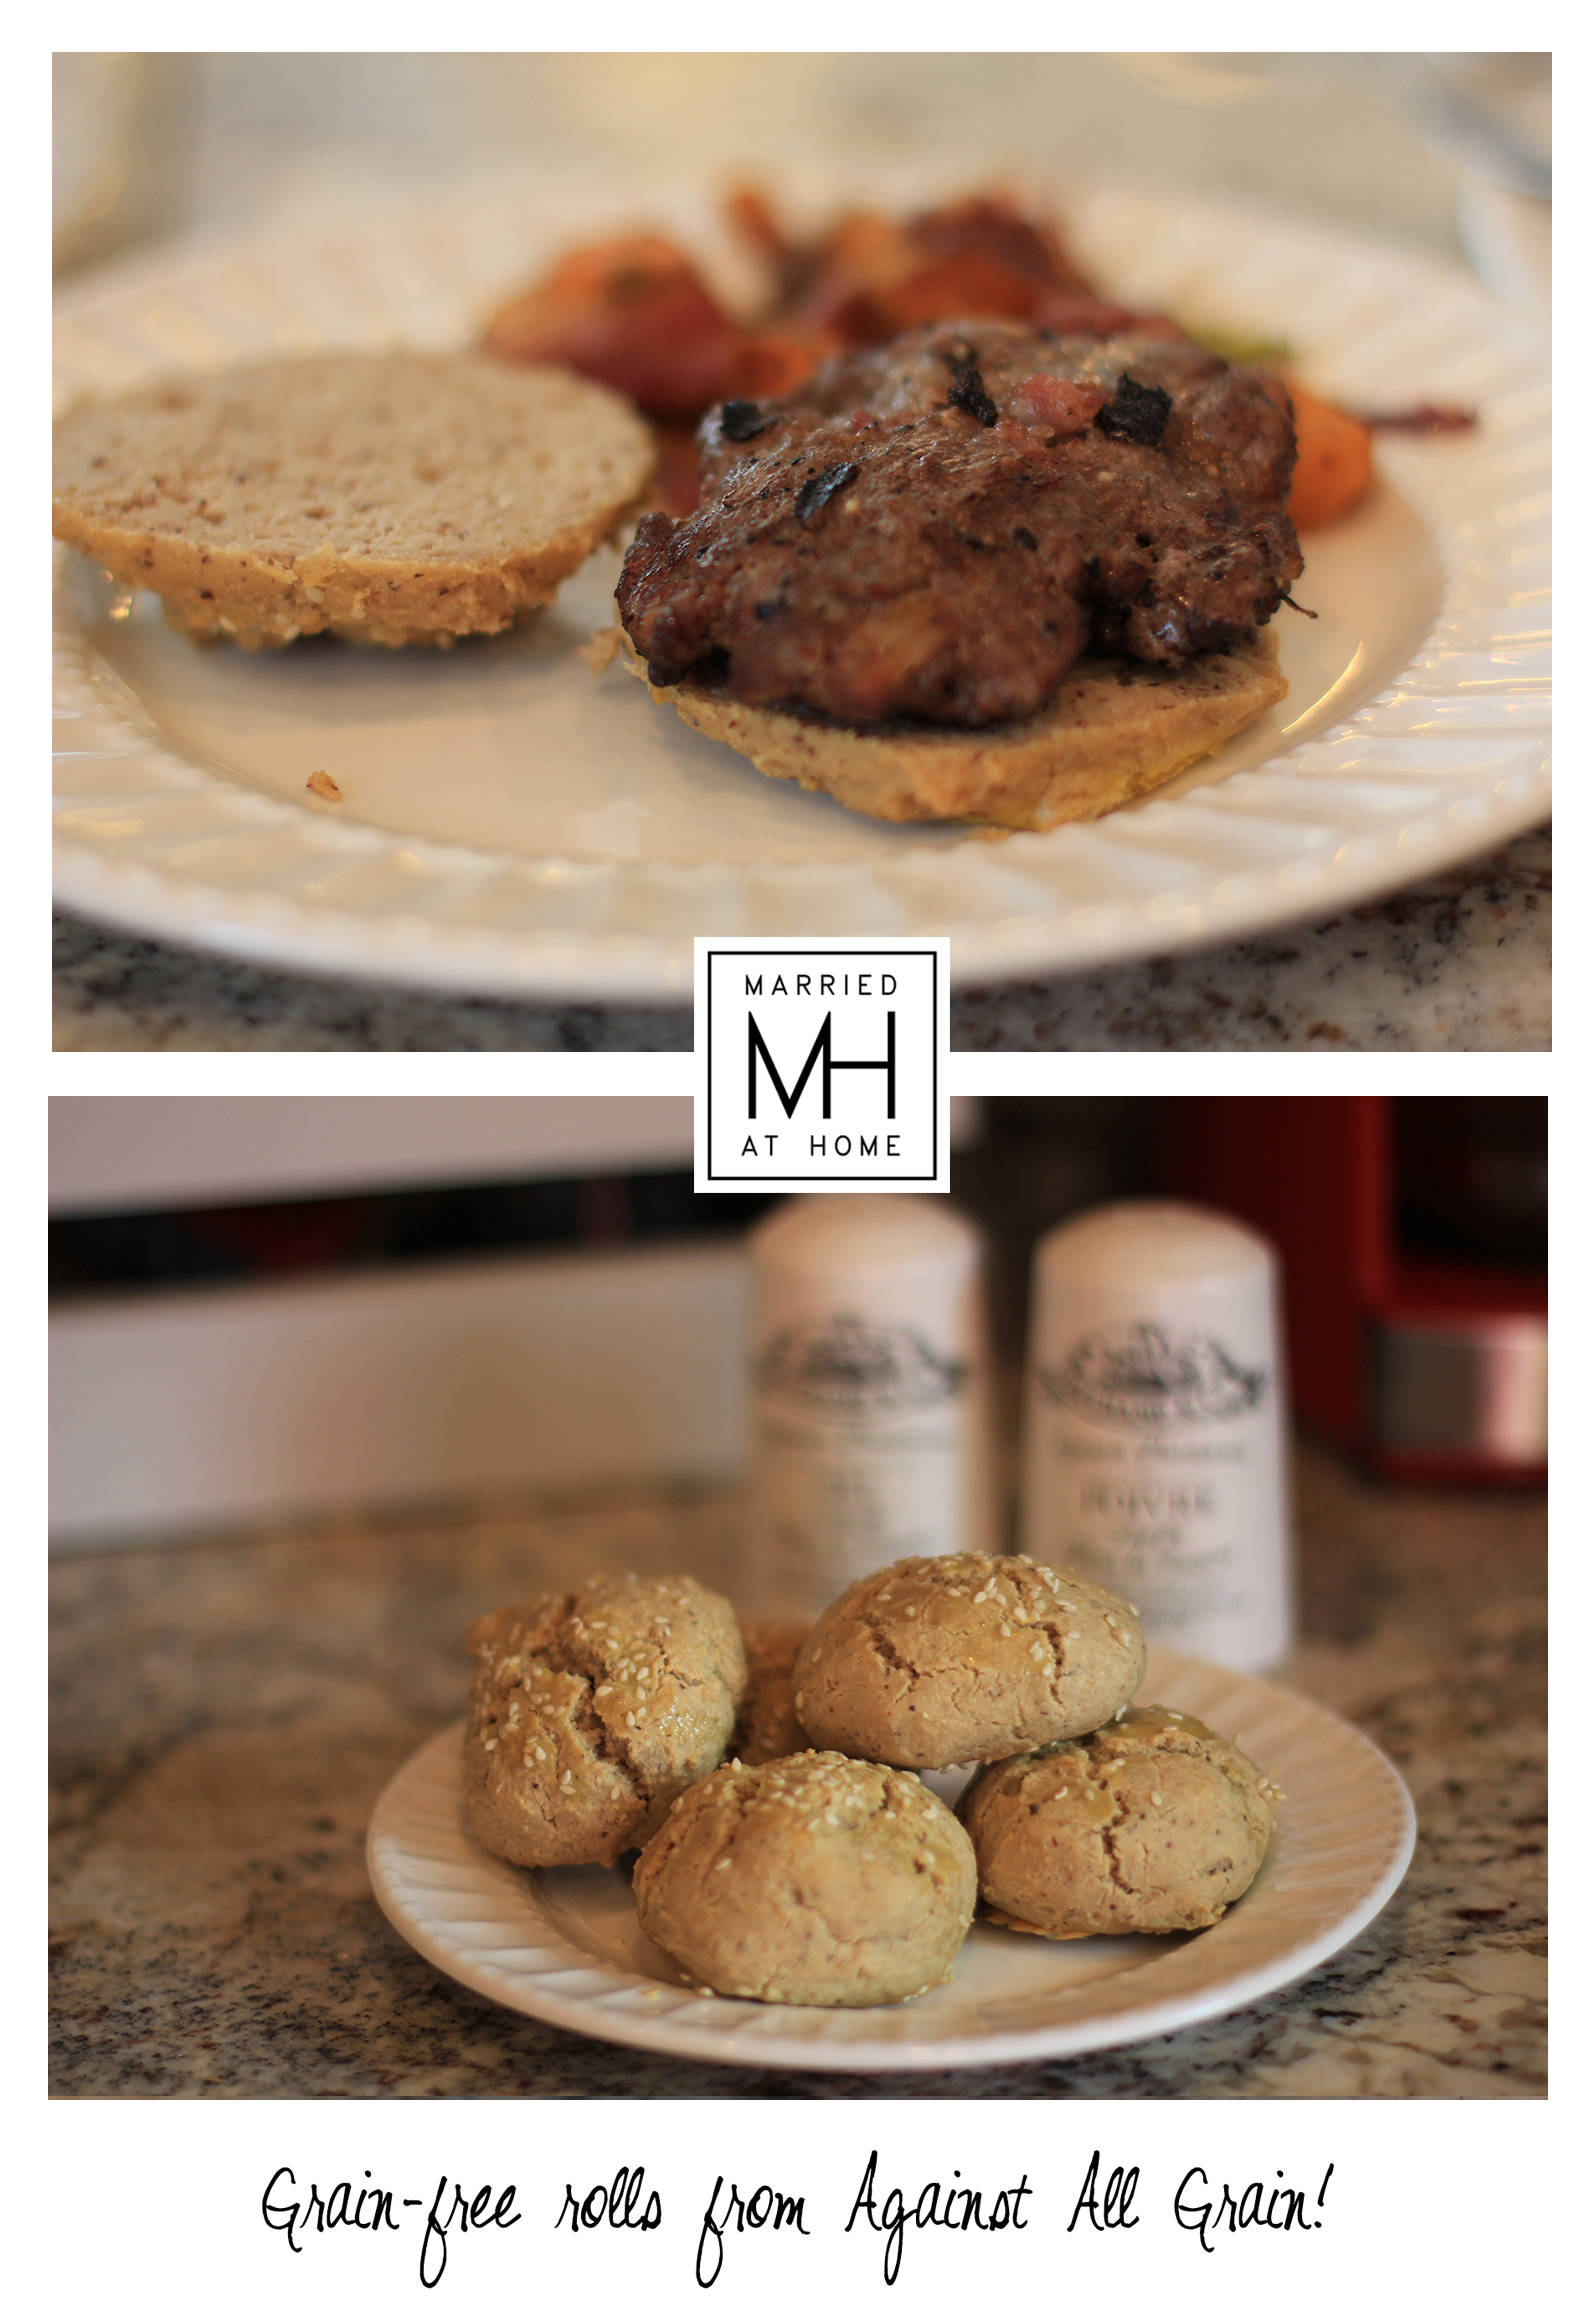 Paleo Hamburgers | Married At Home